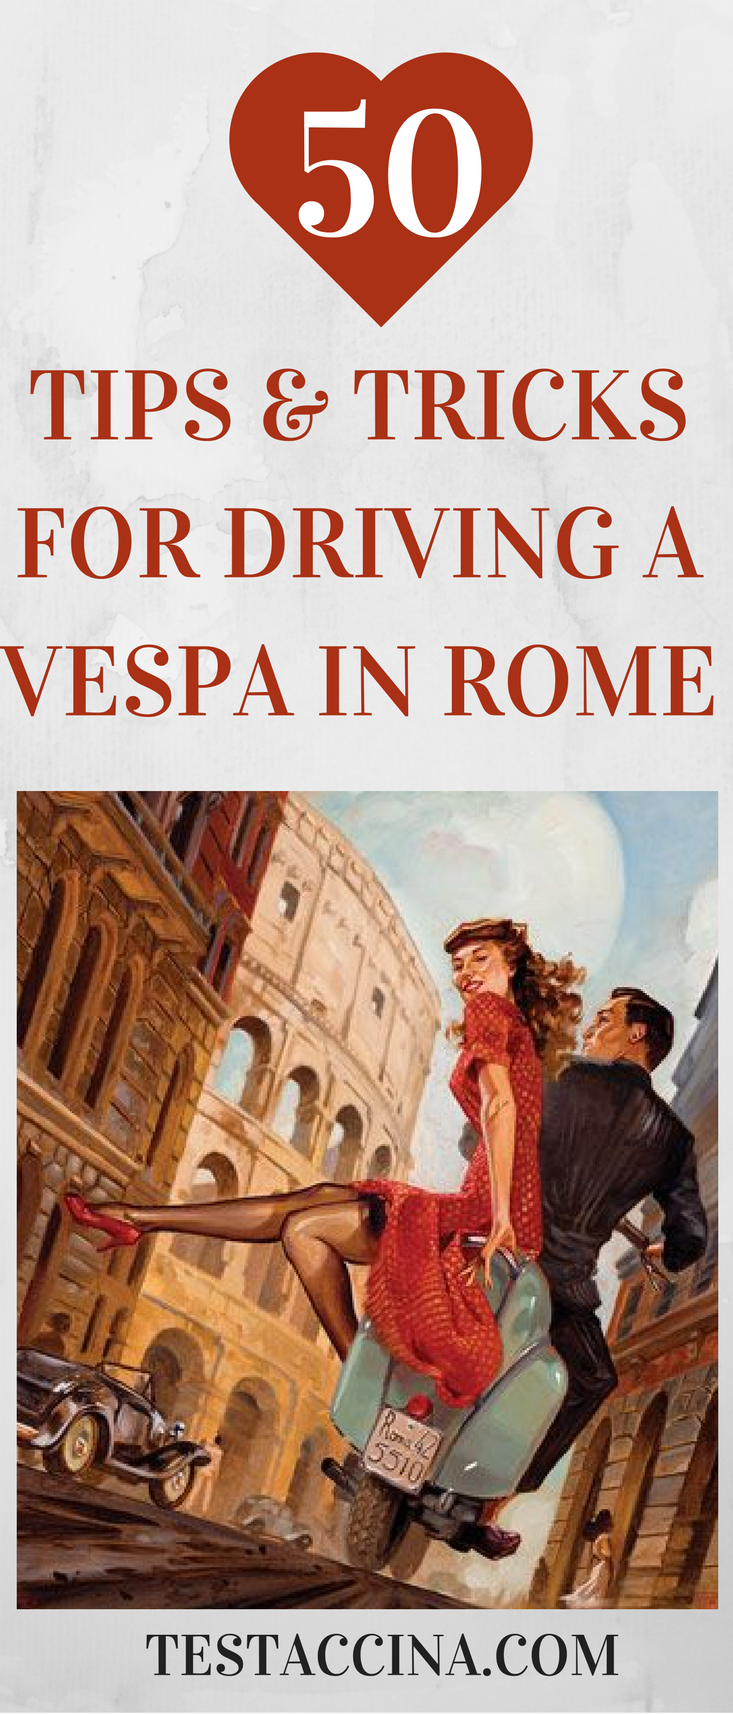 There's nothing more fun than driving a Vespa through the streets of Rome. Read on for some essential tips about staying safe and enjoying the best of Italy on two wheels.